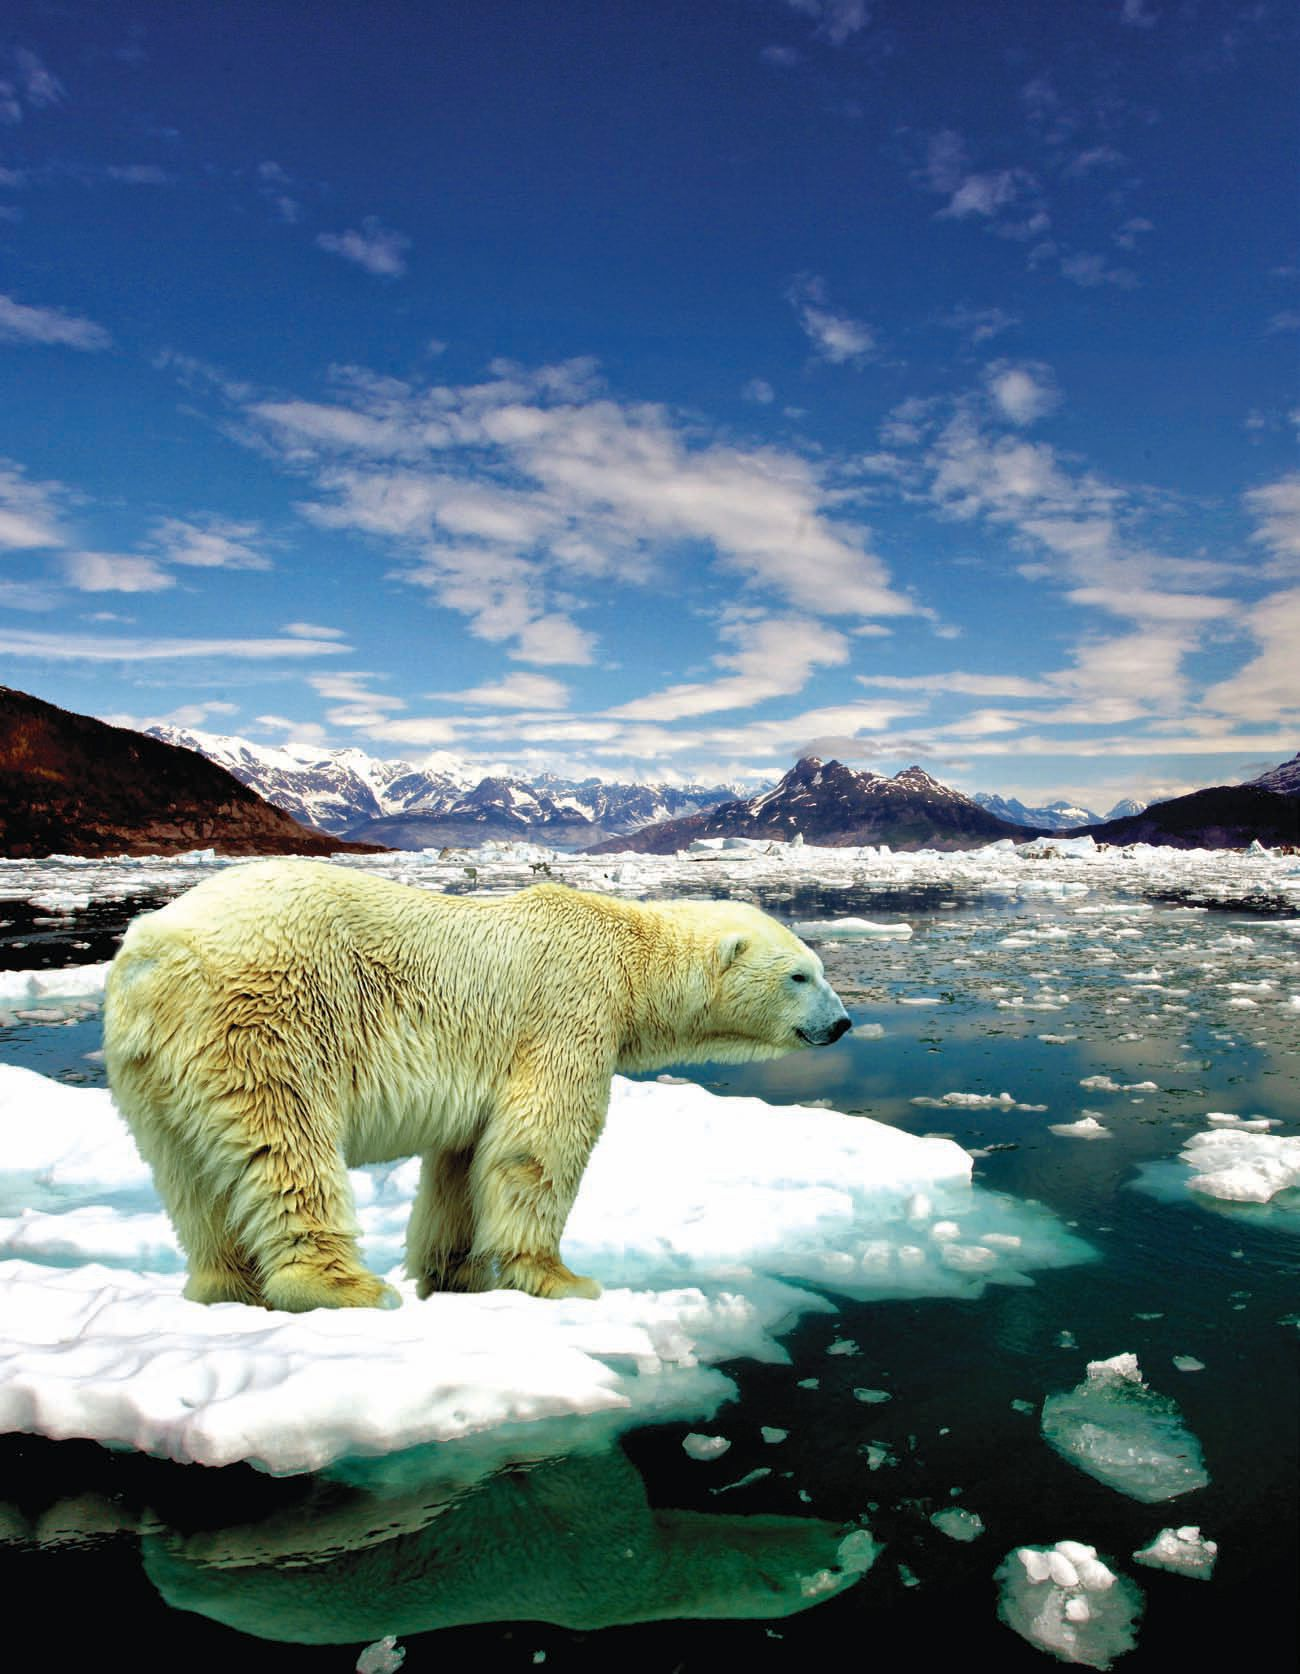 Image of Polar Bear standing on melting ice surrounded by water.